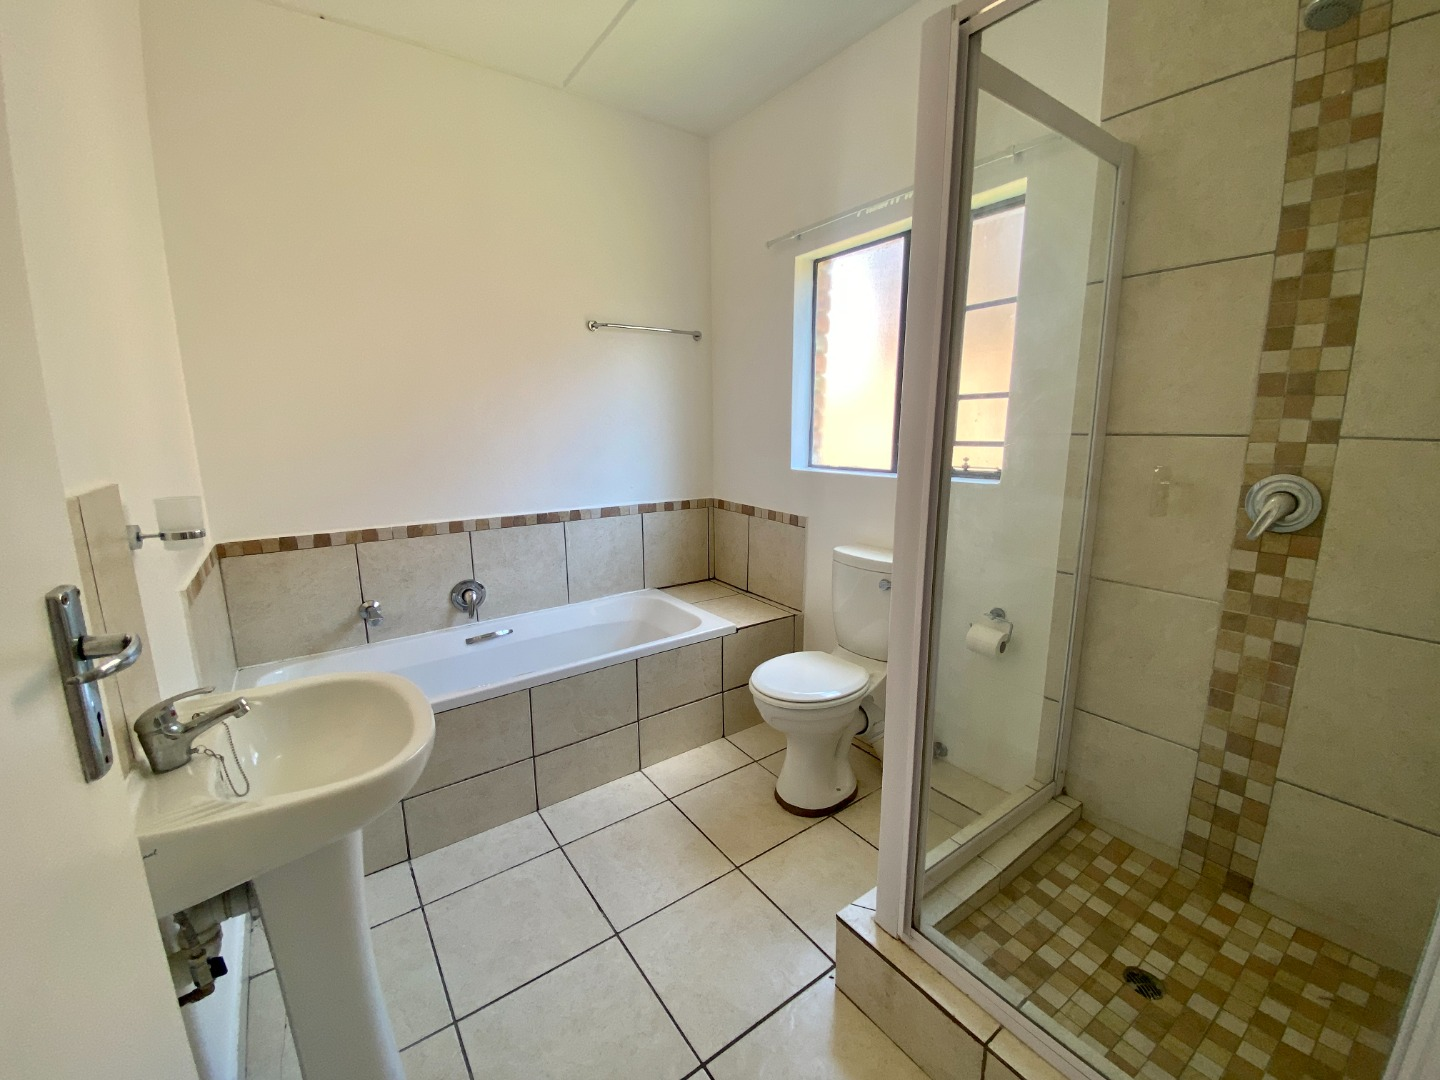 2 Bedroom Apartment / Flat For Sale in Grand Central